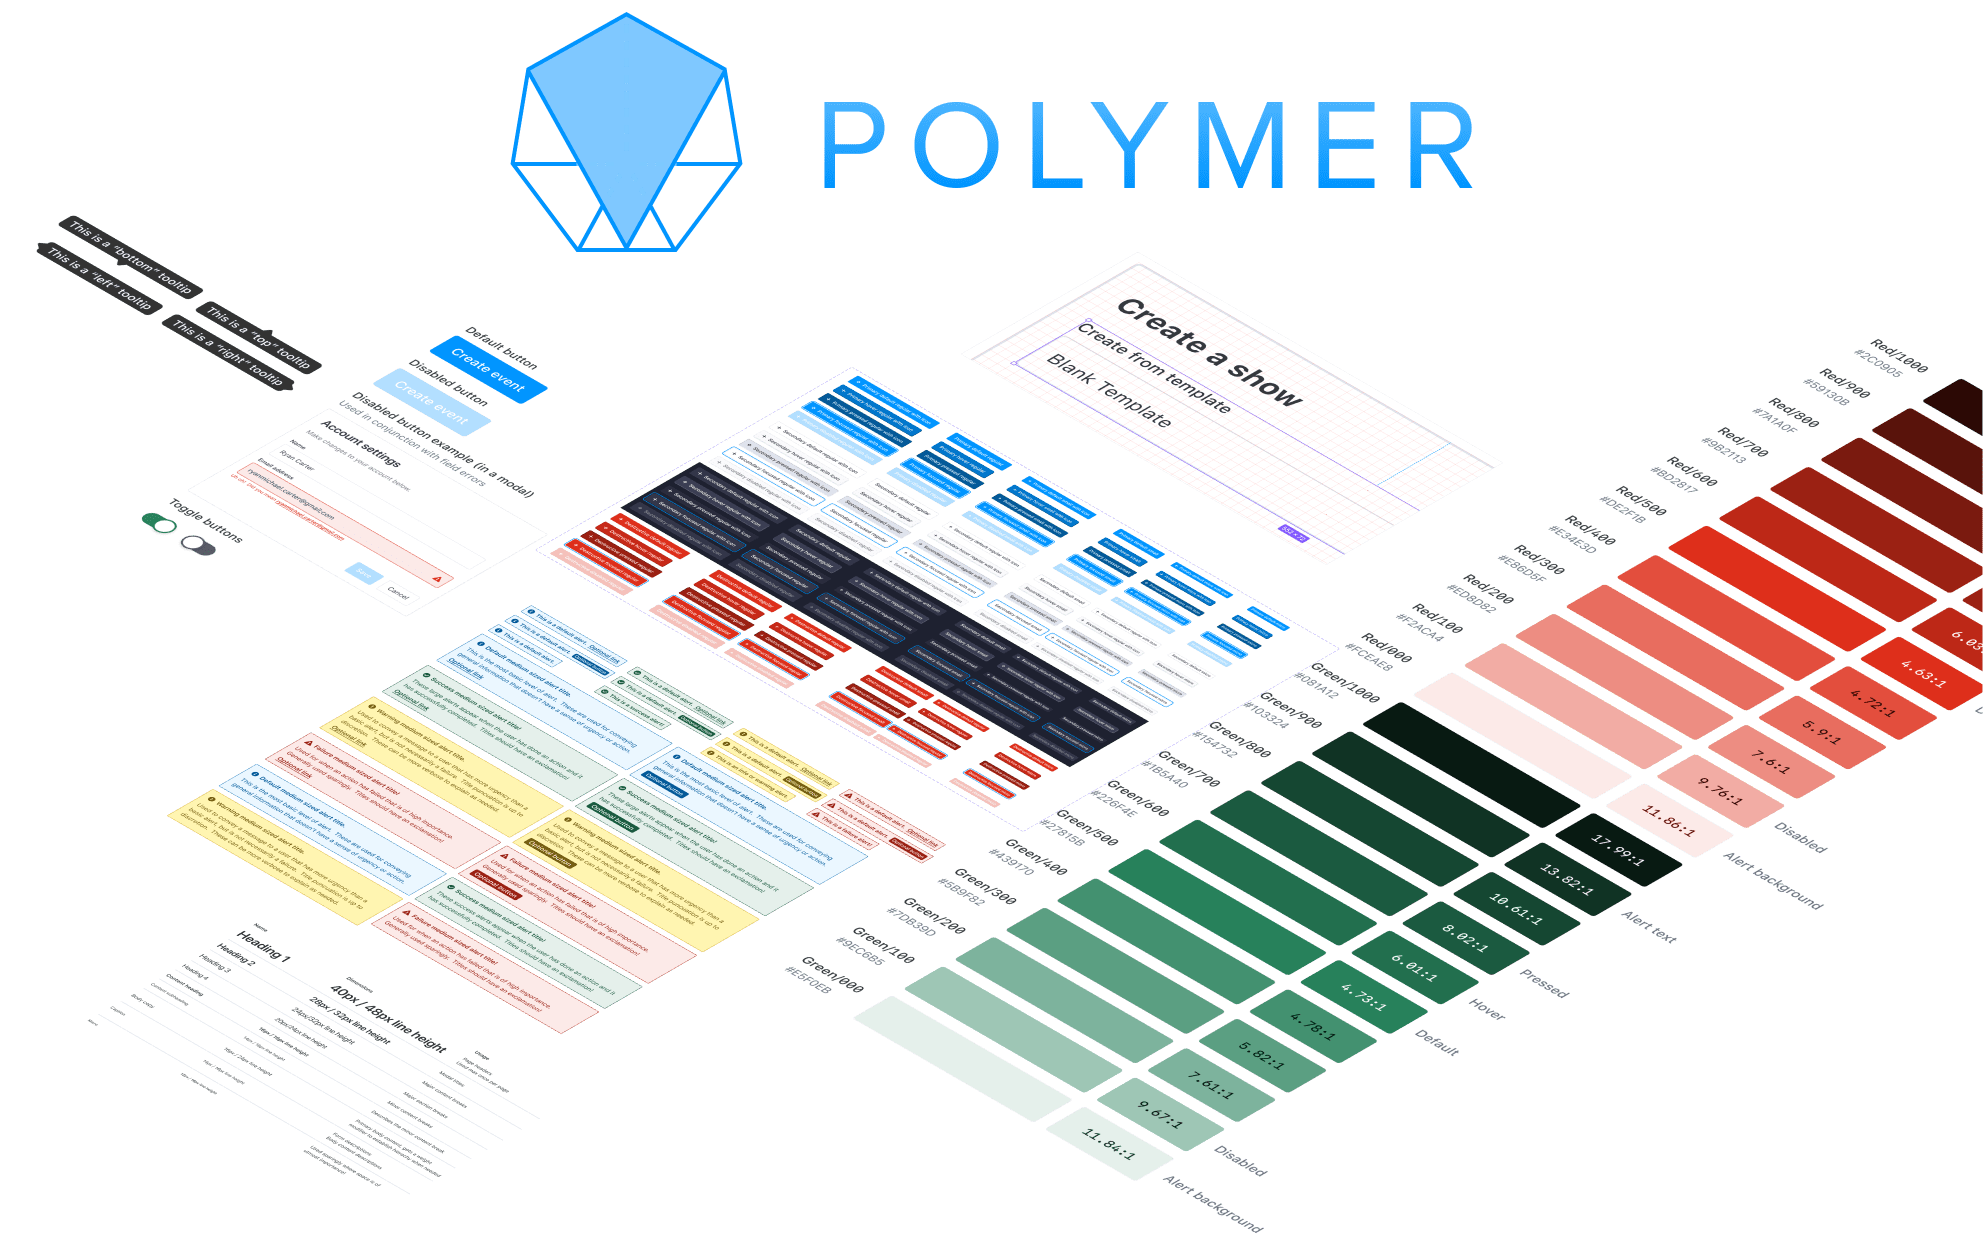 Promo image for Polymer case study